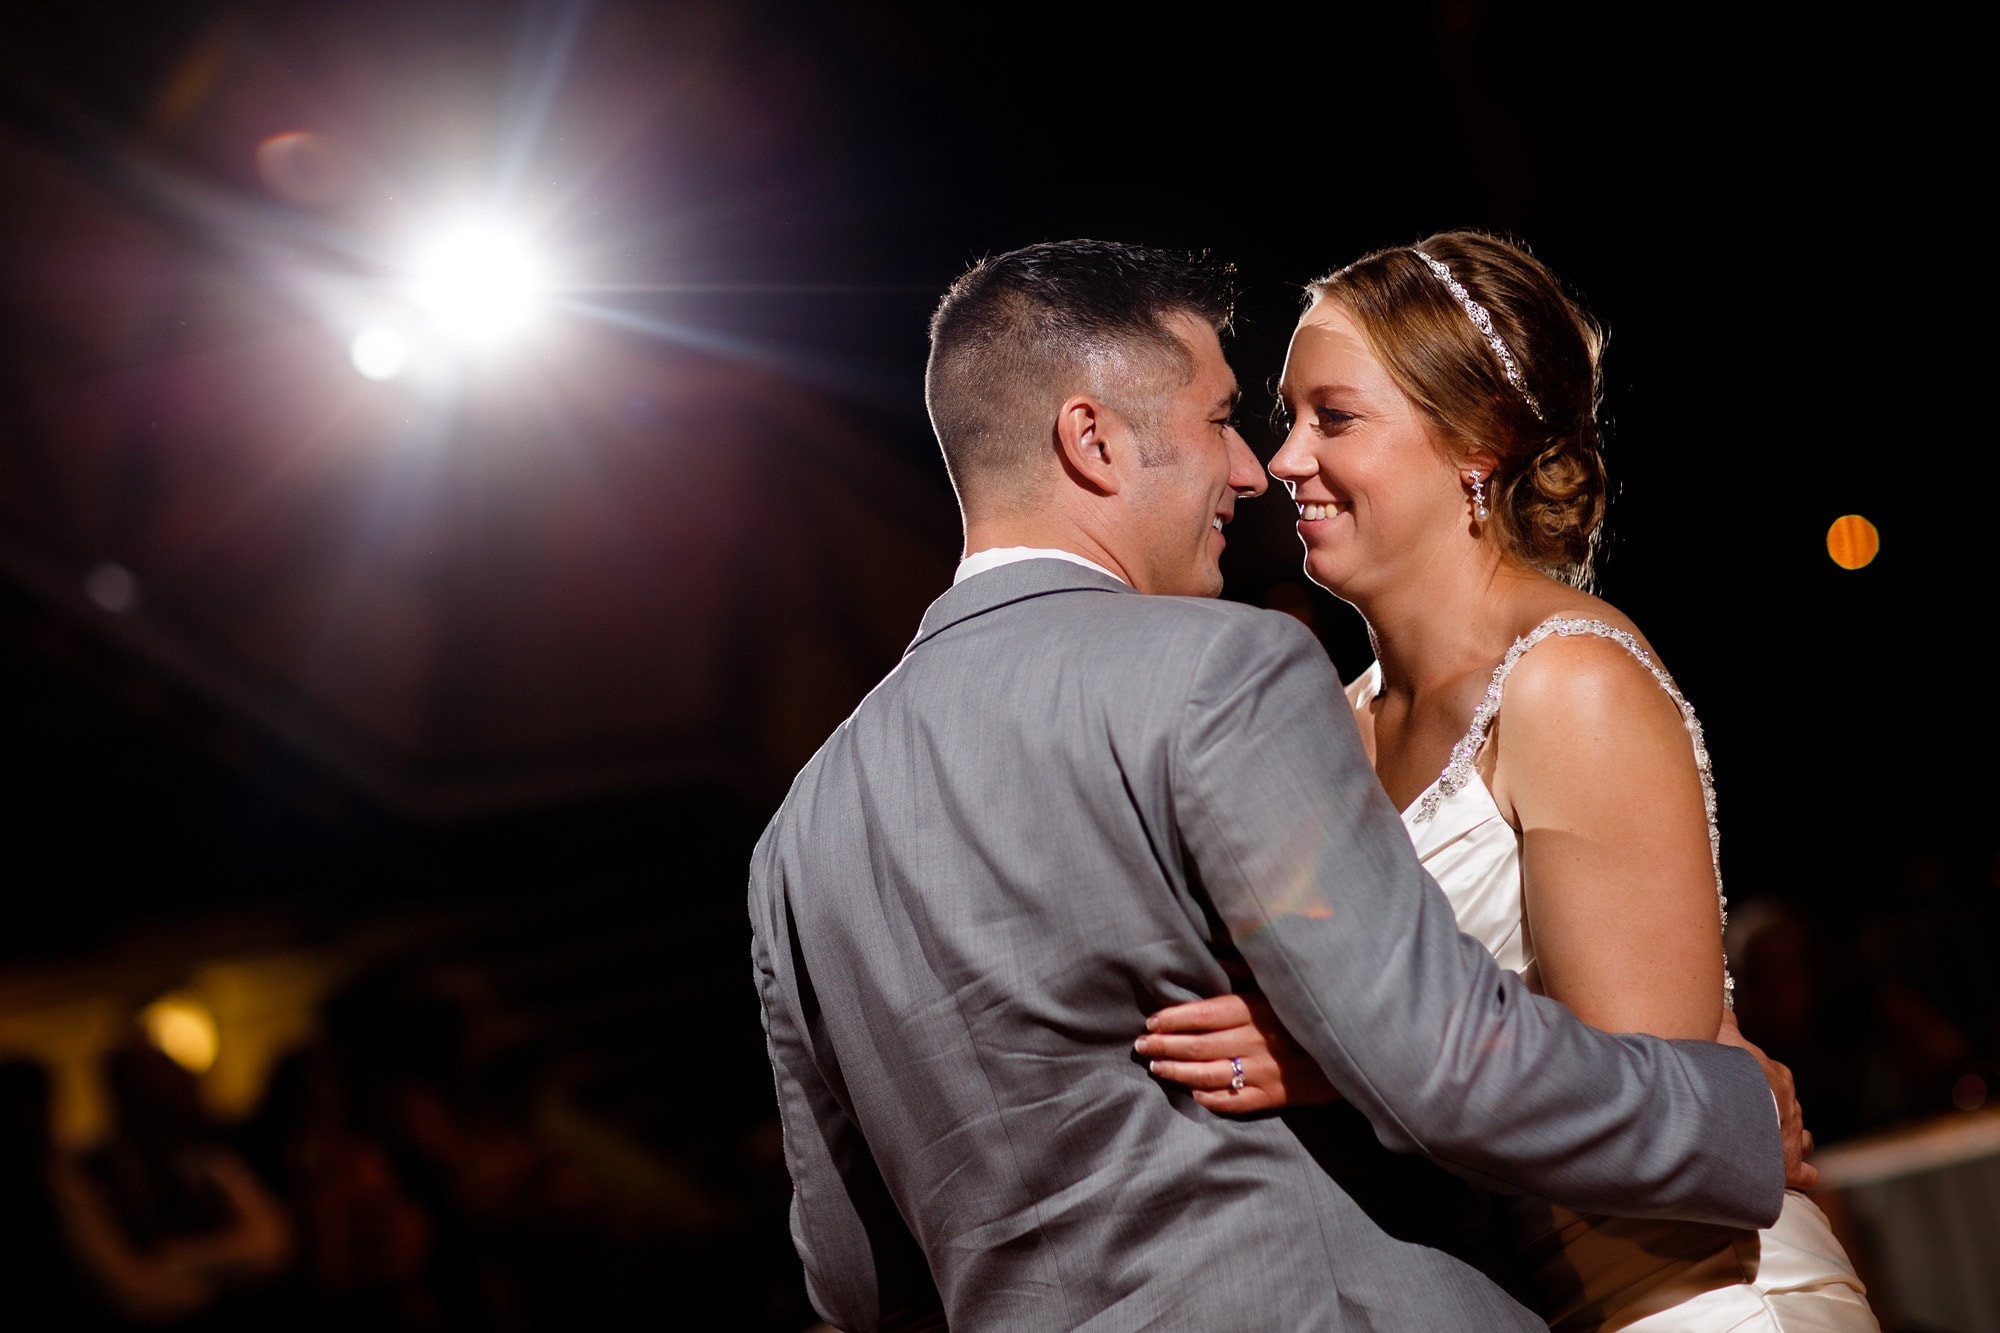 Megan and Bill share their first dance together as husband and wife during their reception in the west atrium at the Denver Museum of Nature and Science